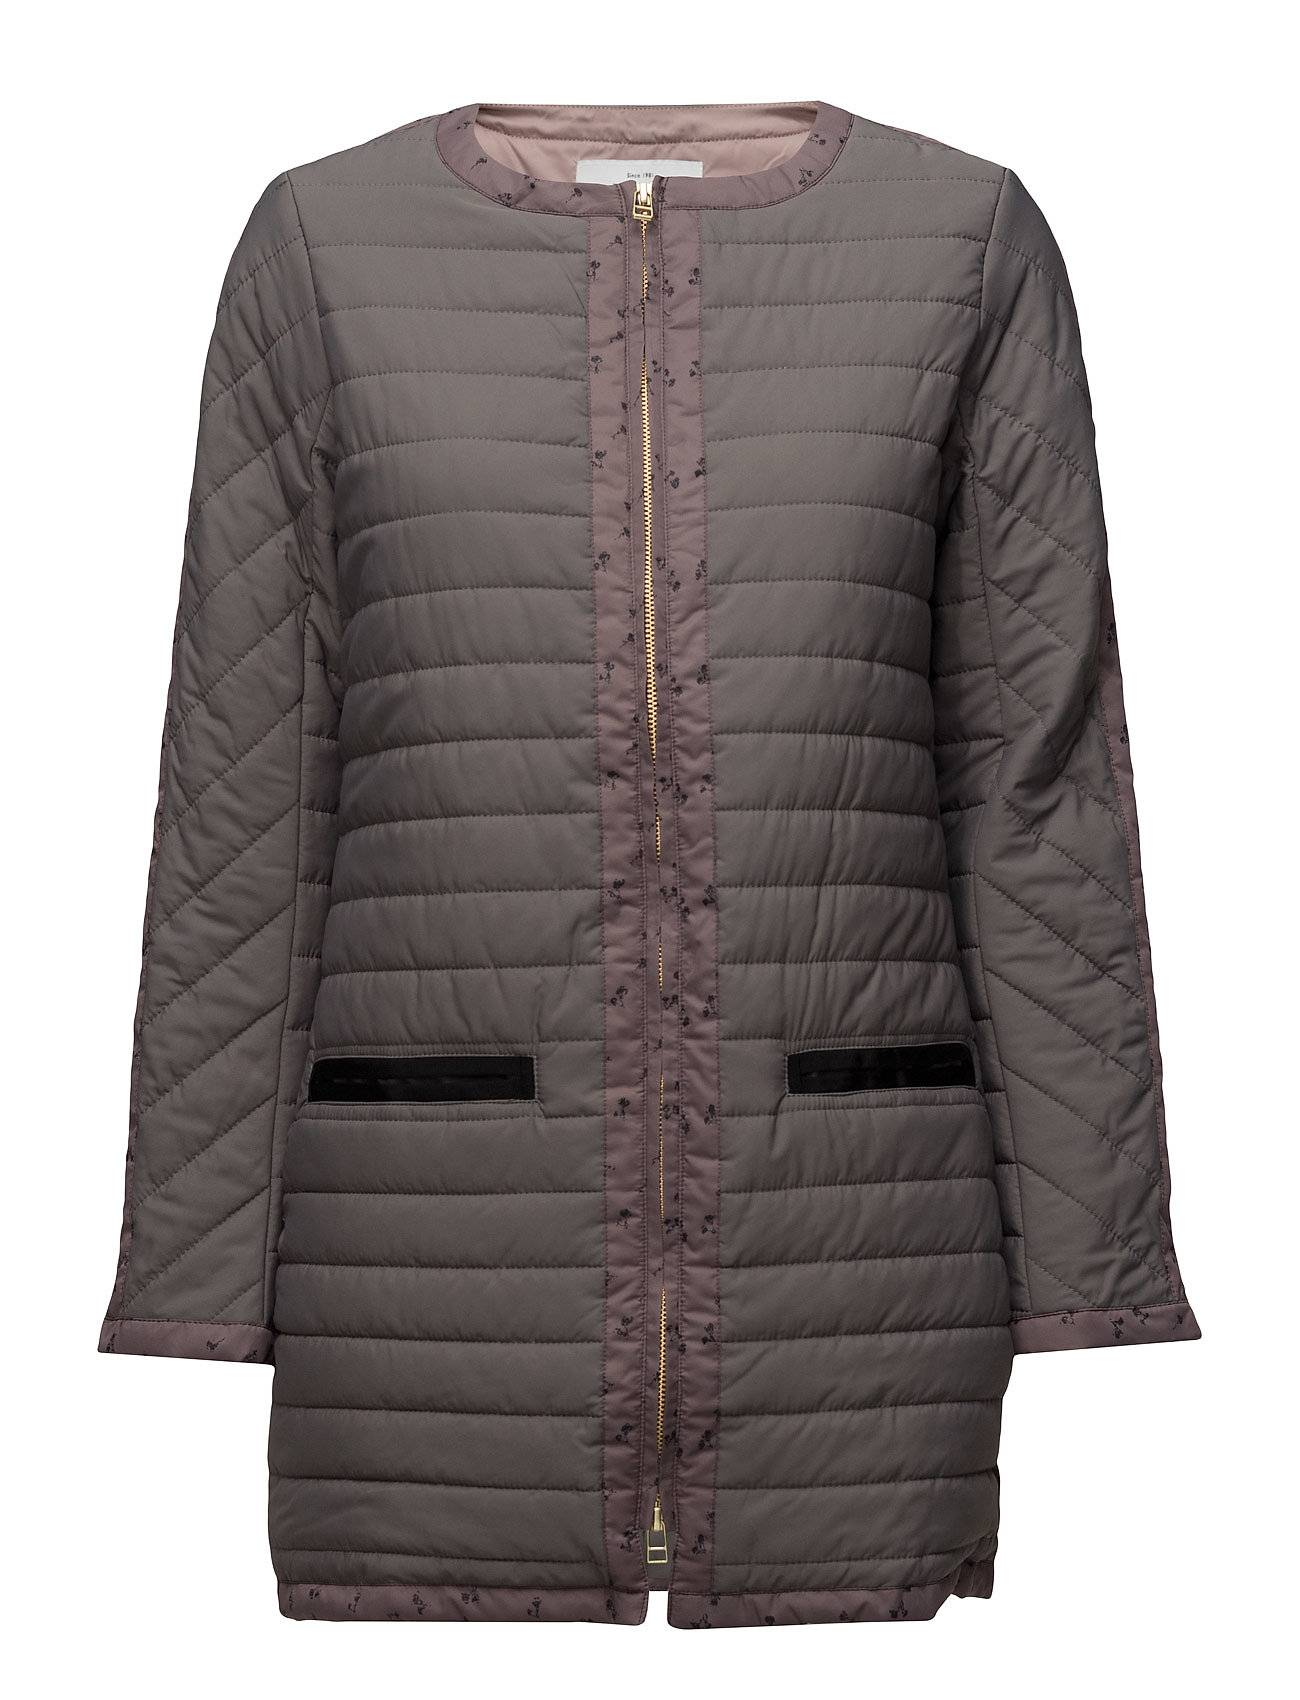 Noa Noa Light Outerwear